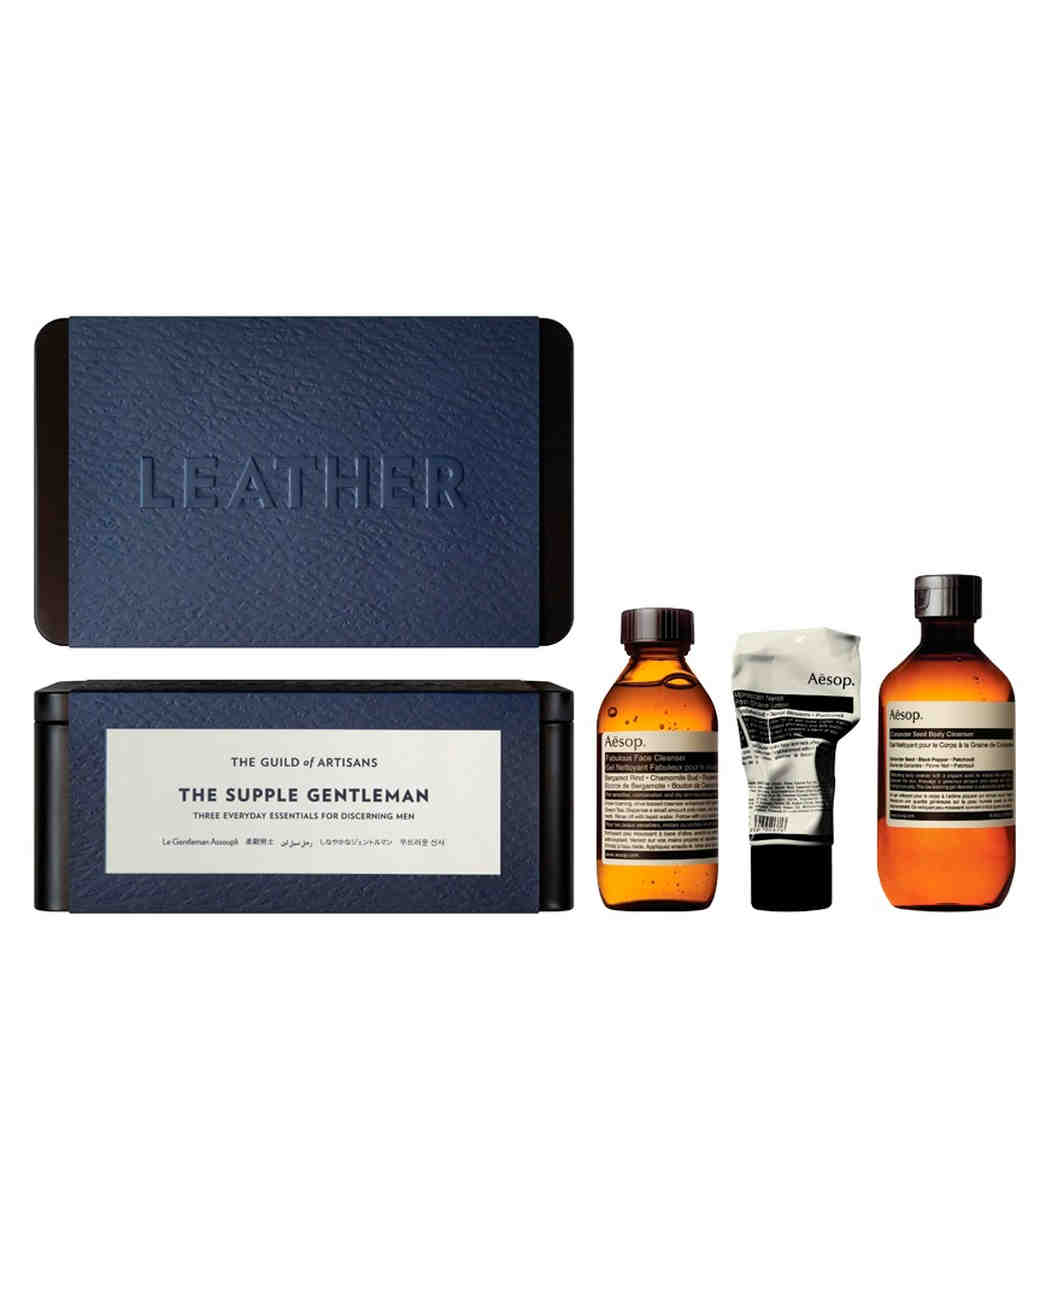 valentines-day-gift-guide-him-aesop-online-gift-kits-leather-0115.jpg